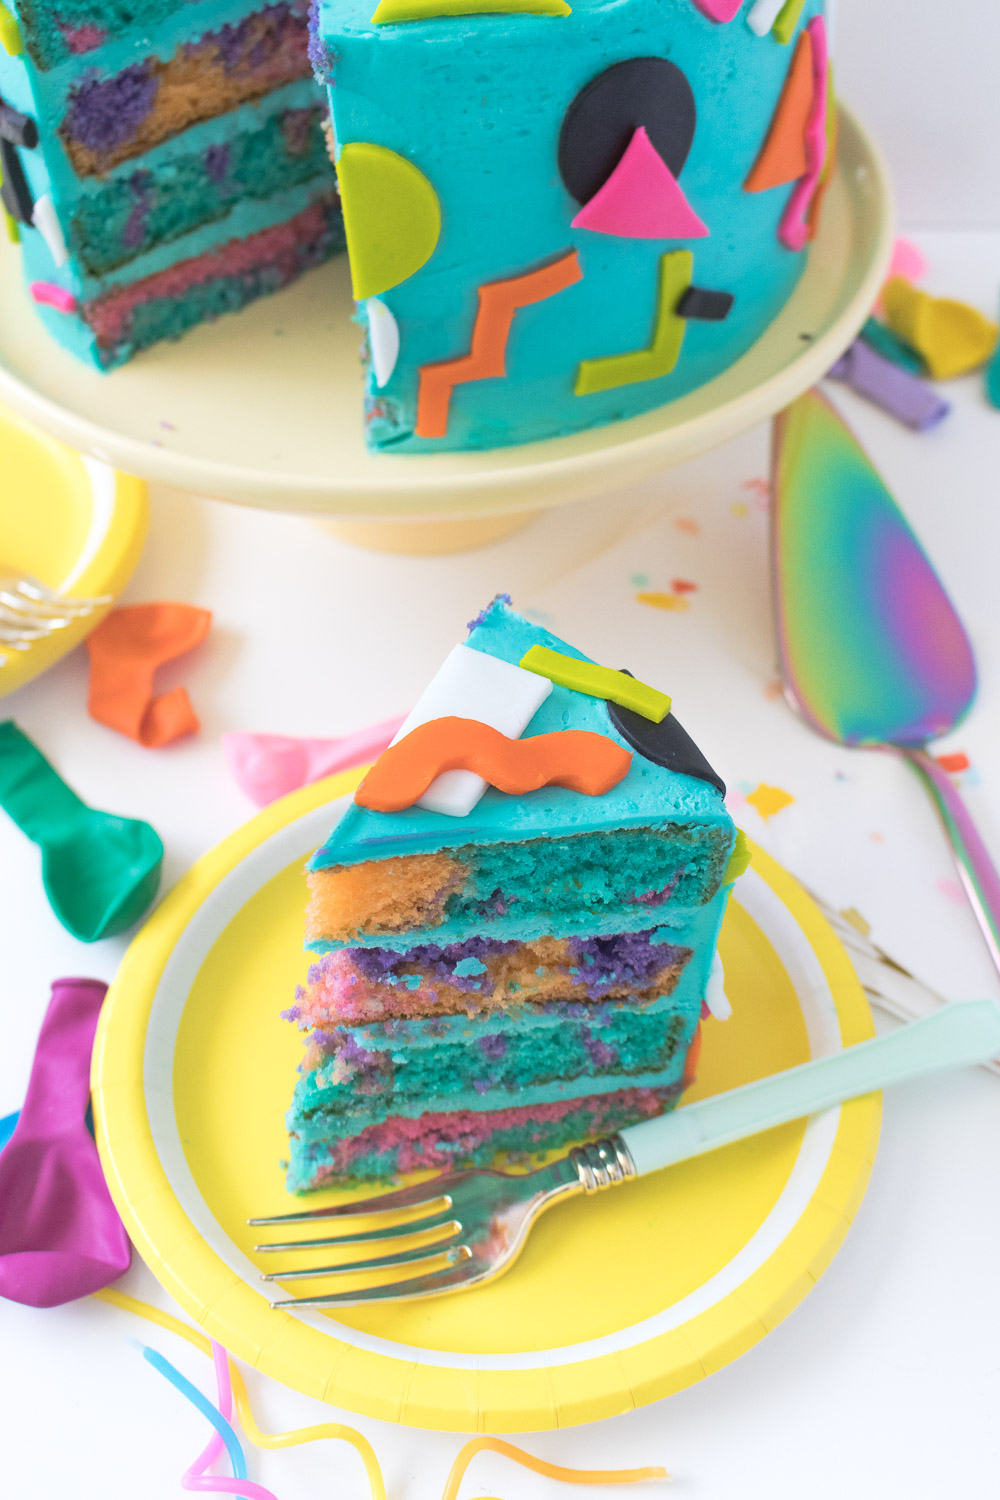 Sensational Throwback Tie Dye 90S Inspired Cake Club Crafted Personalised Birthday Cards Paralily Jamesorg